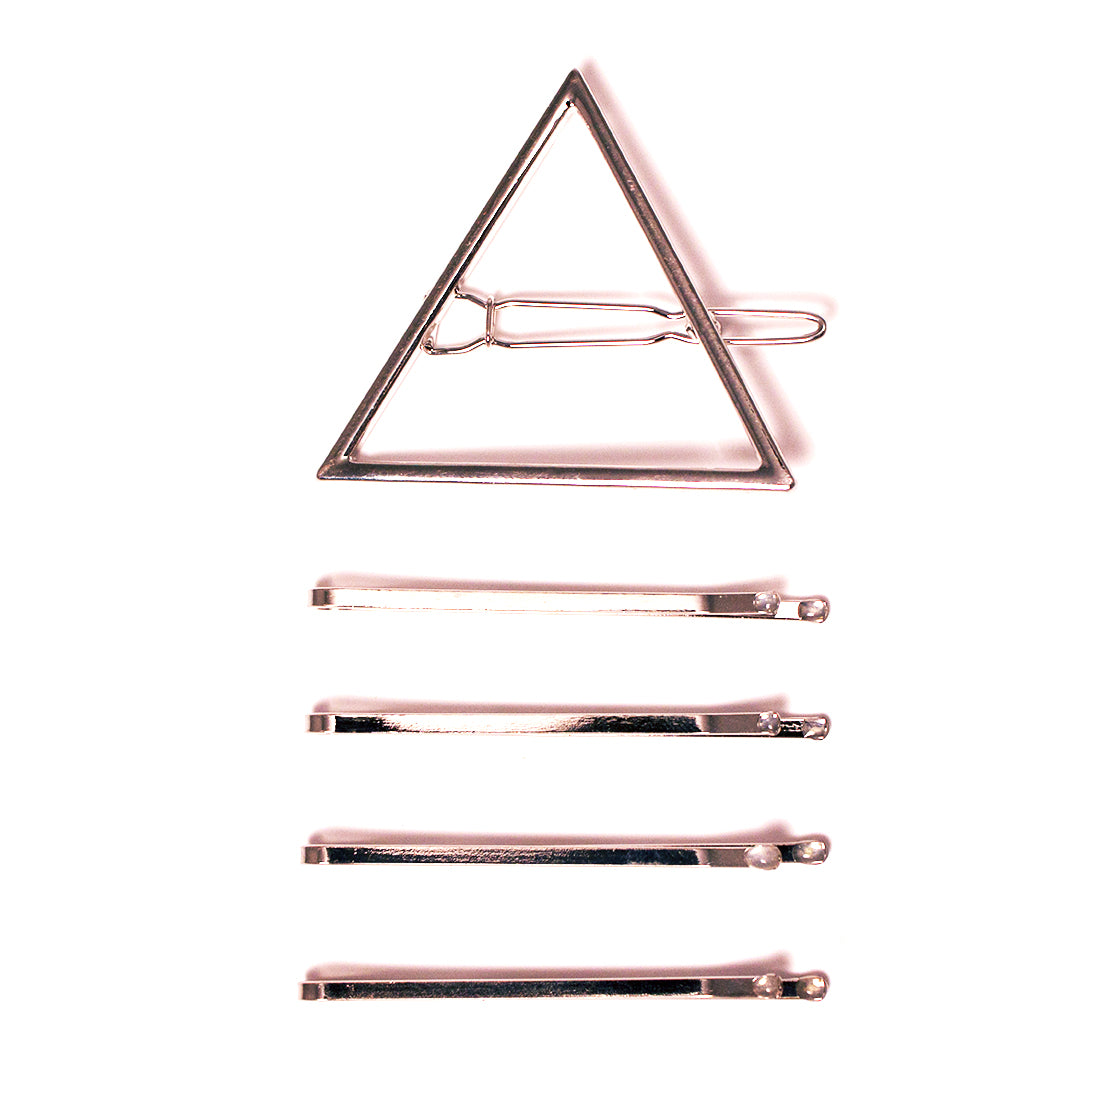 Mia® Triangle Clip and Bobby Pins - silver color - 5 pieces - designed by #Mia Kaminski of Mia Beauty